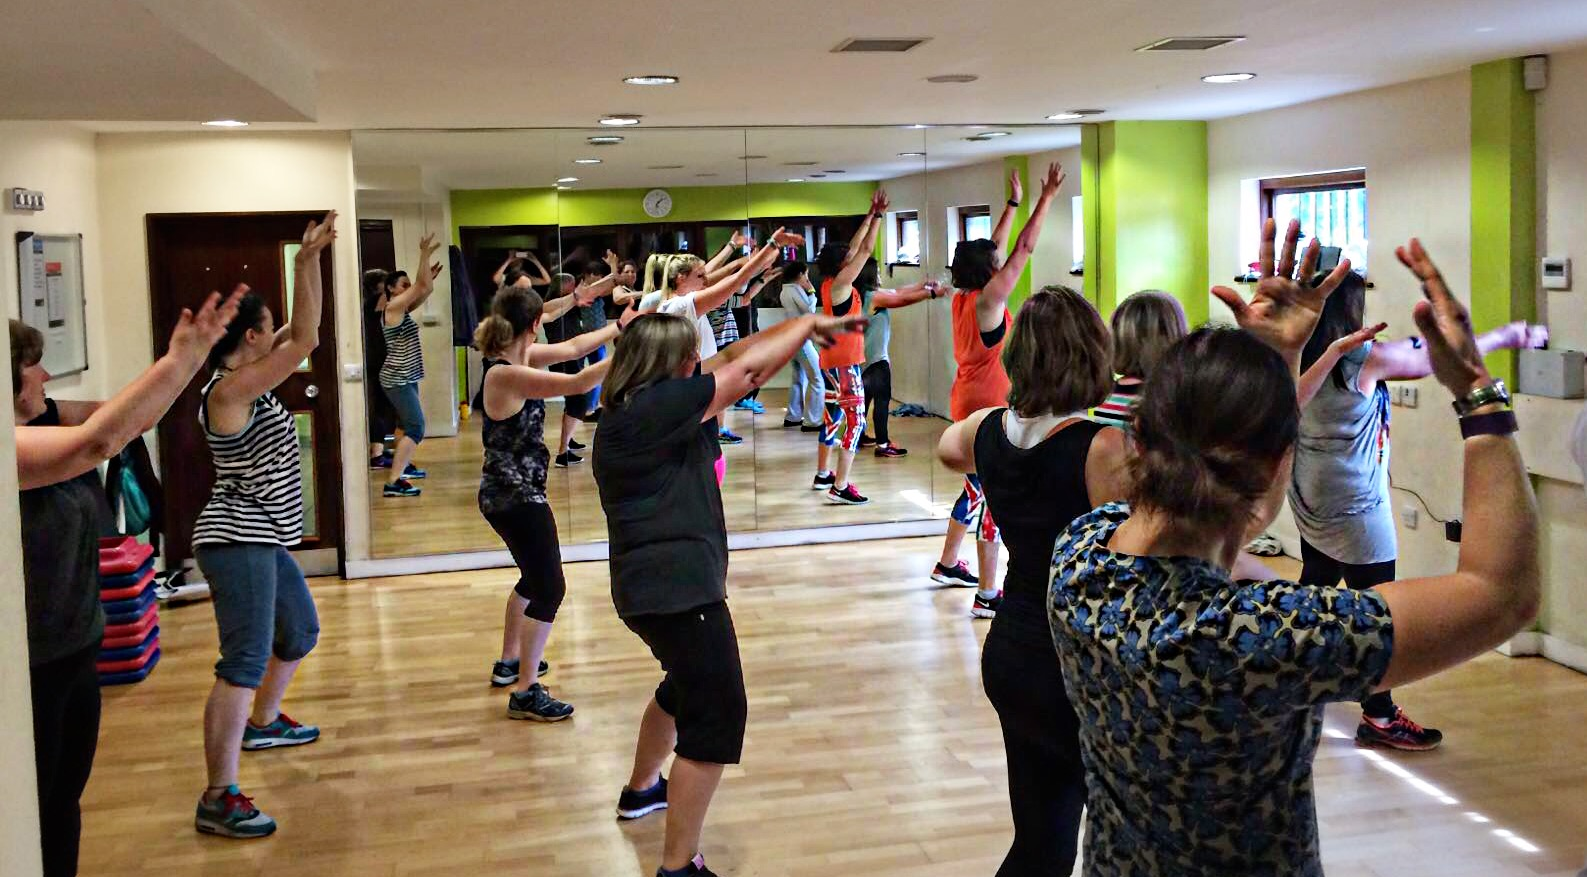 Fun, friendly Dance Fitness Class for All Abilities!